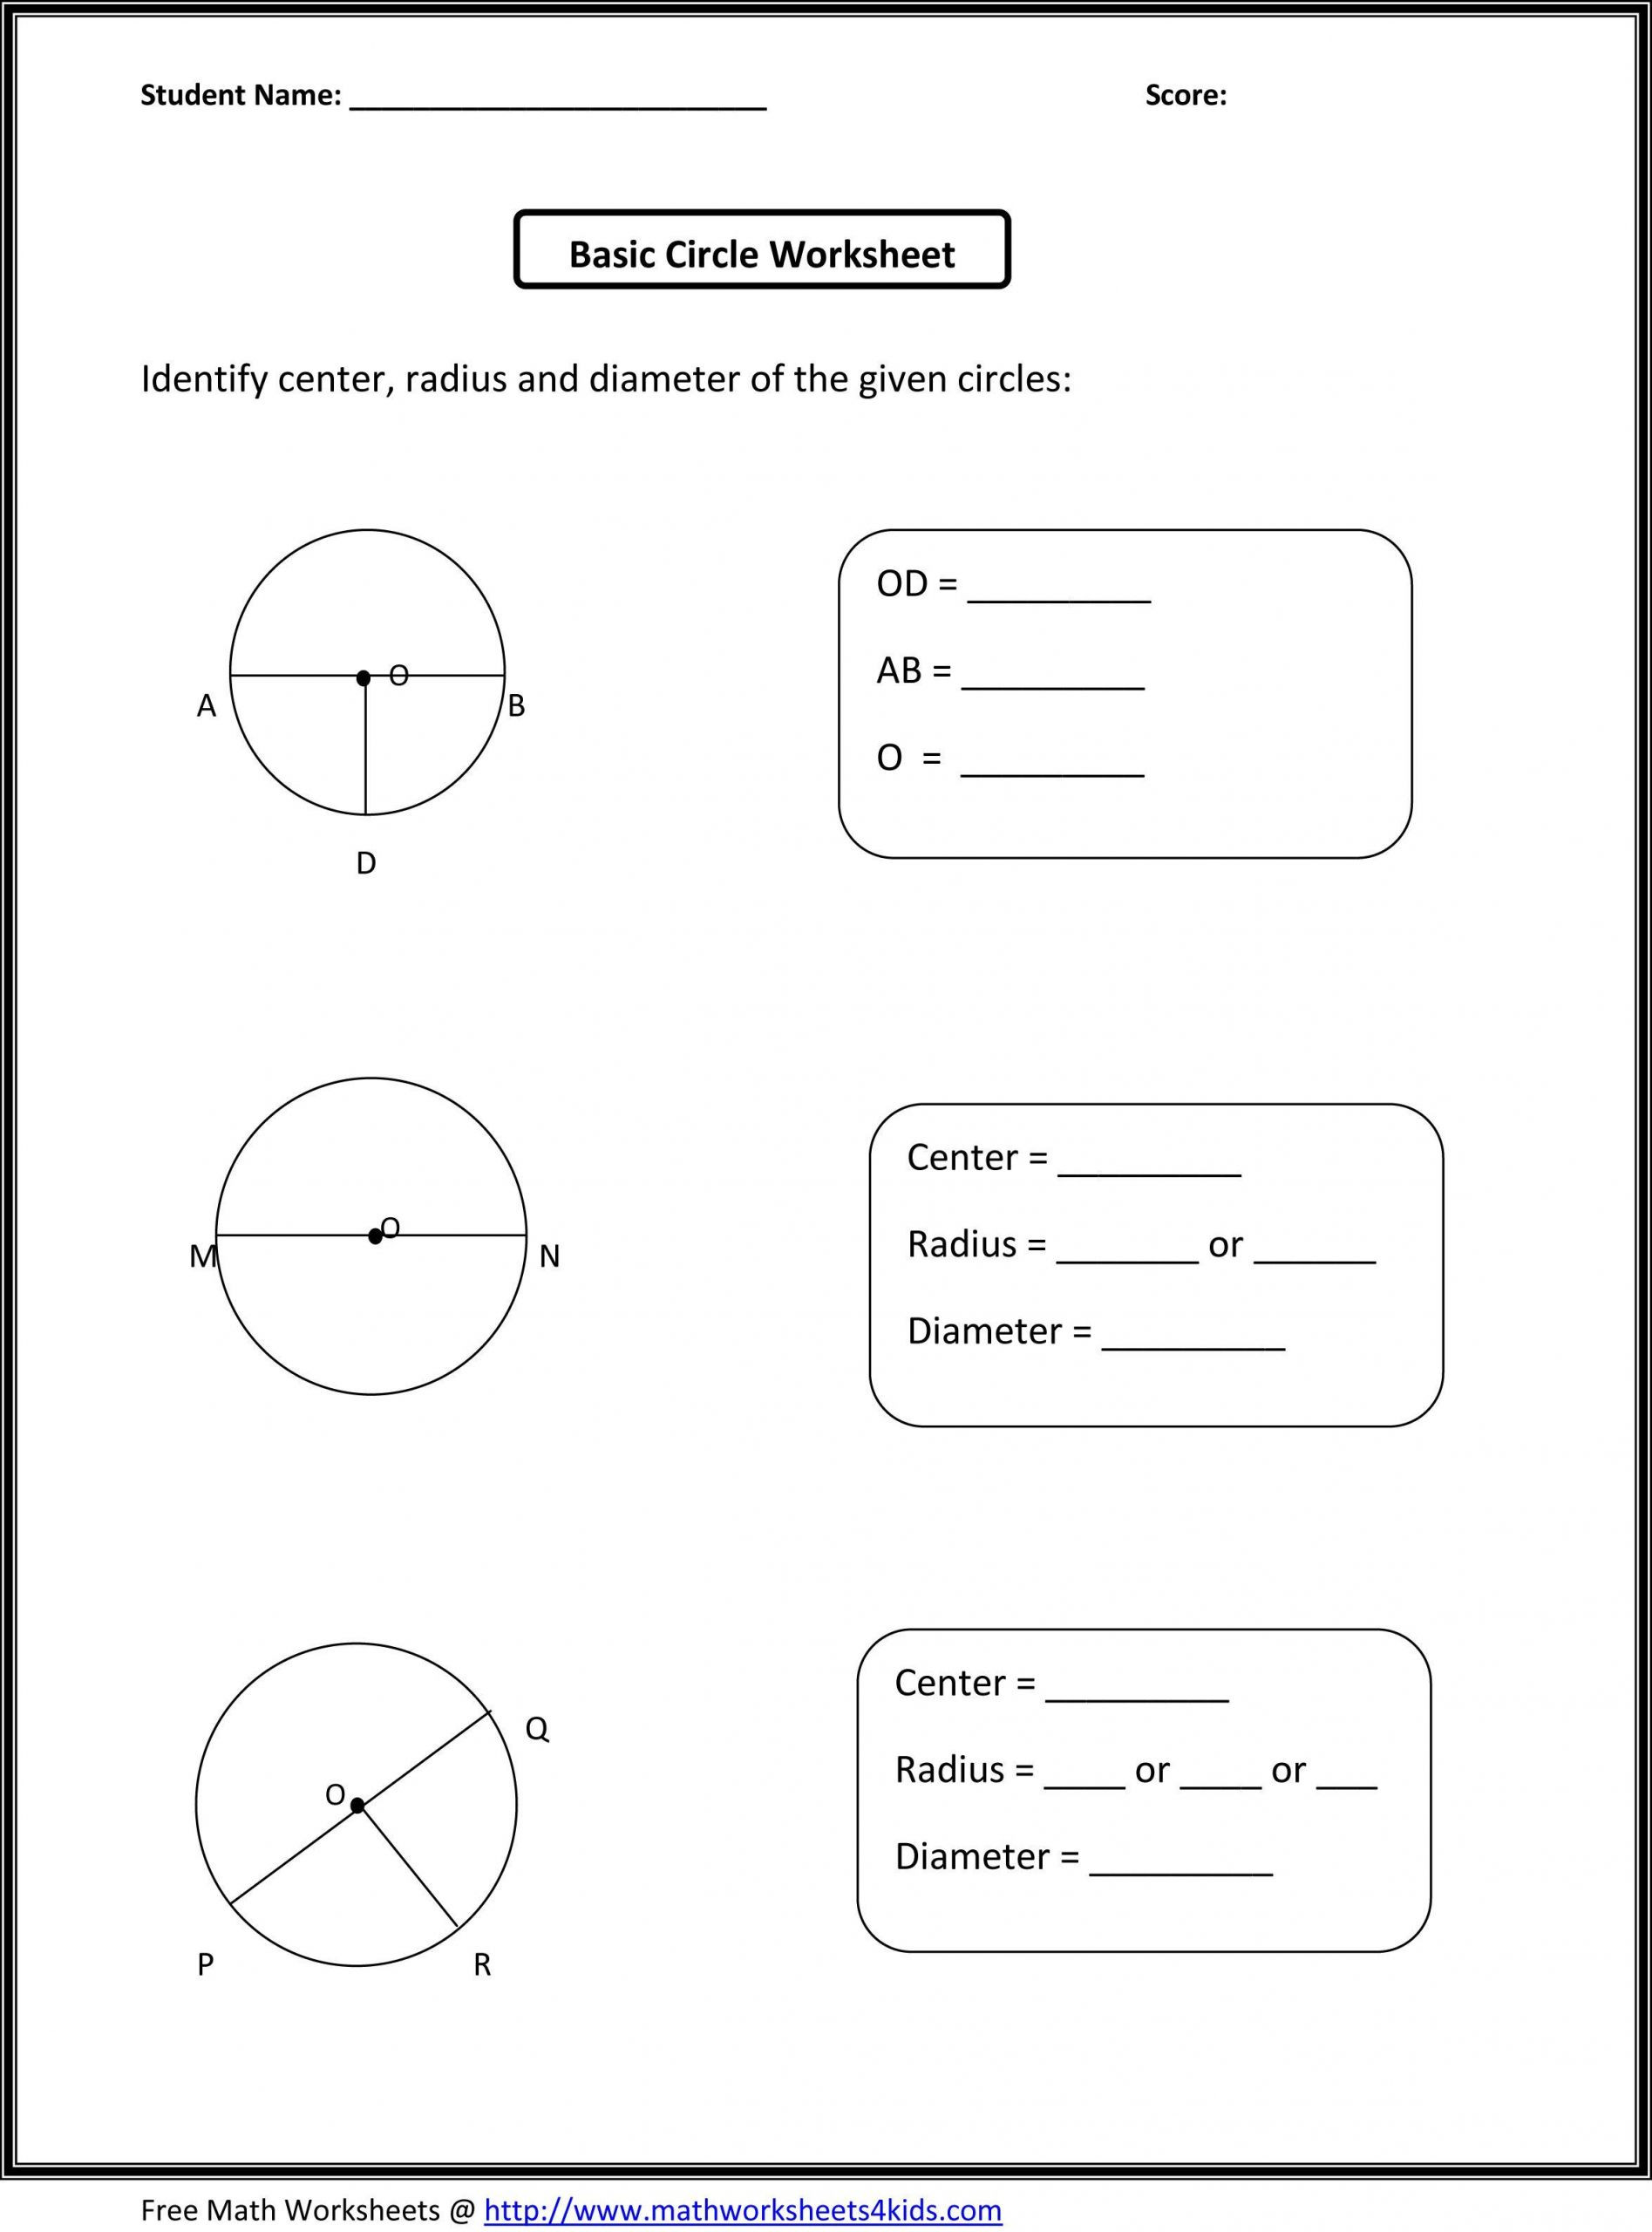 Polygon Worksheets 3rd Grade 4 3rd Grade Geometry Worksheets Worksheets